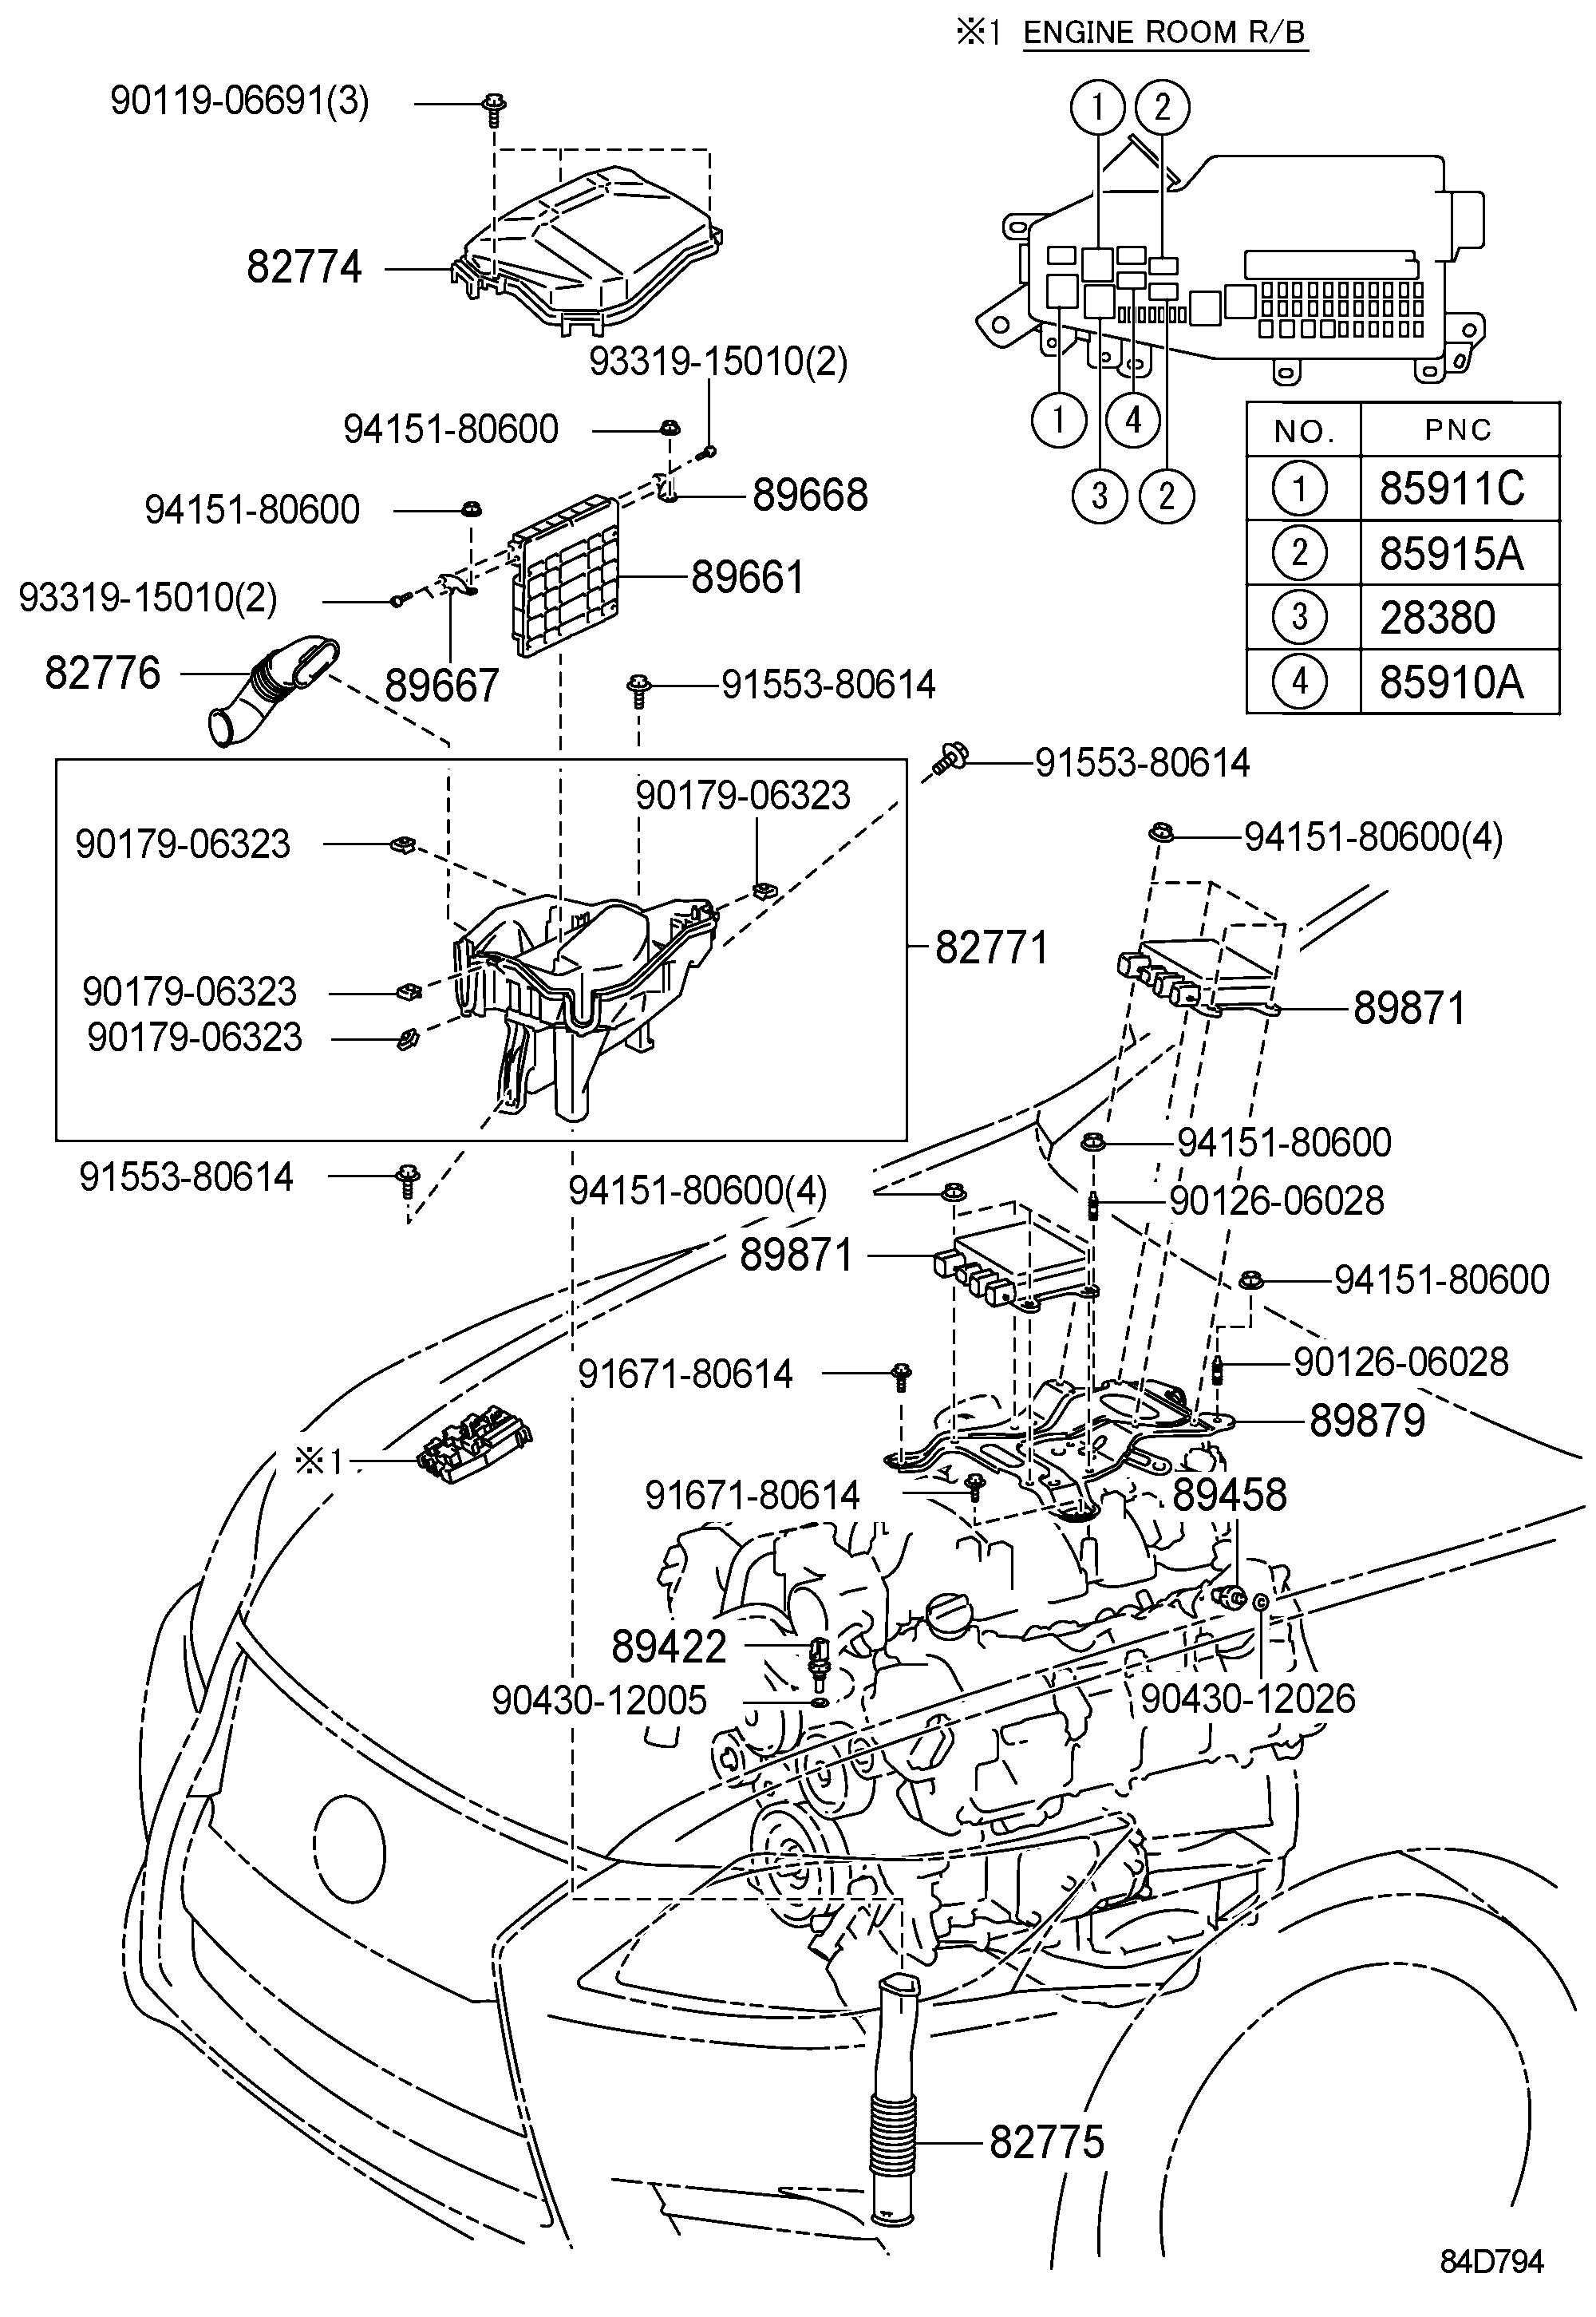 LEXUS LS460-460L ELECTRONIC FUEL INJECTION SYSTEM